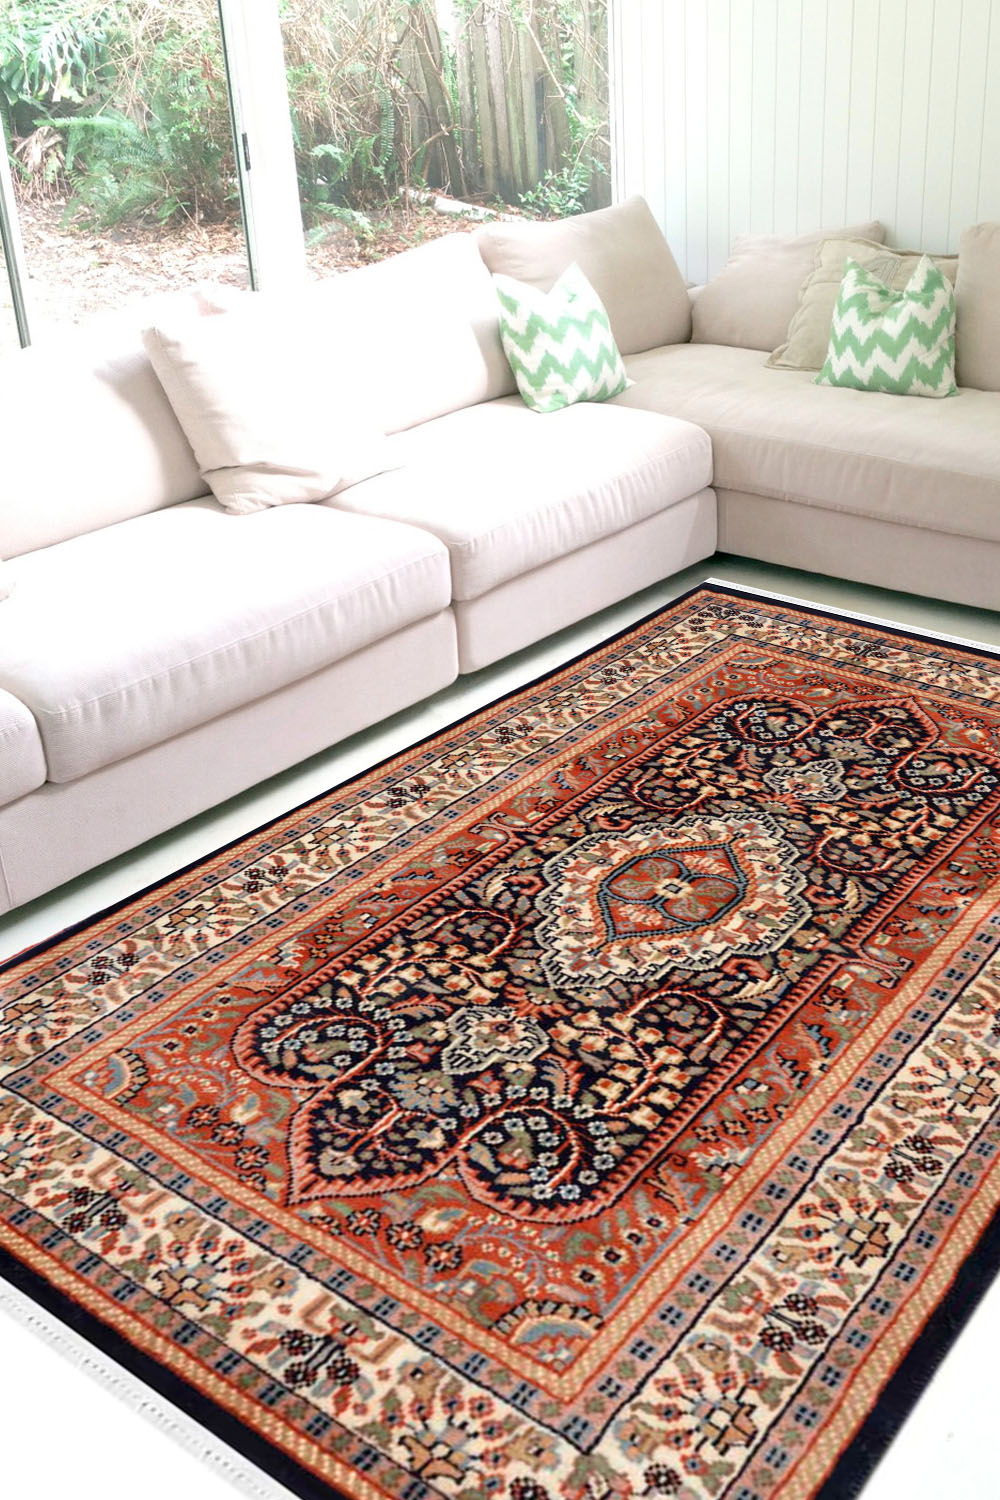 Shop Beautiful Rust Victorian Wool Area Rugs And Carpet Online